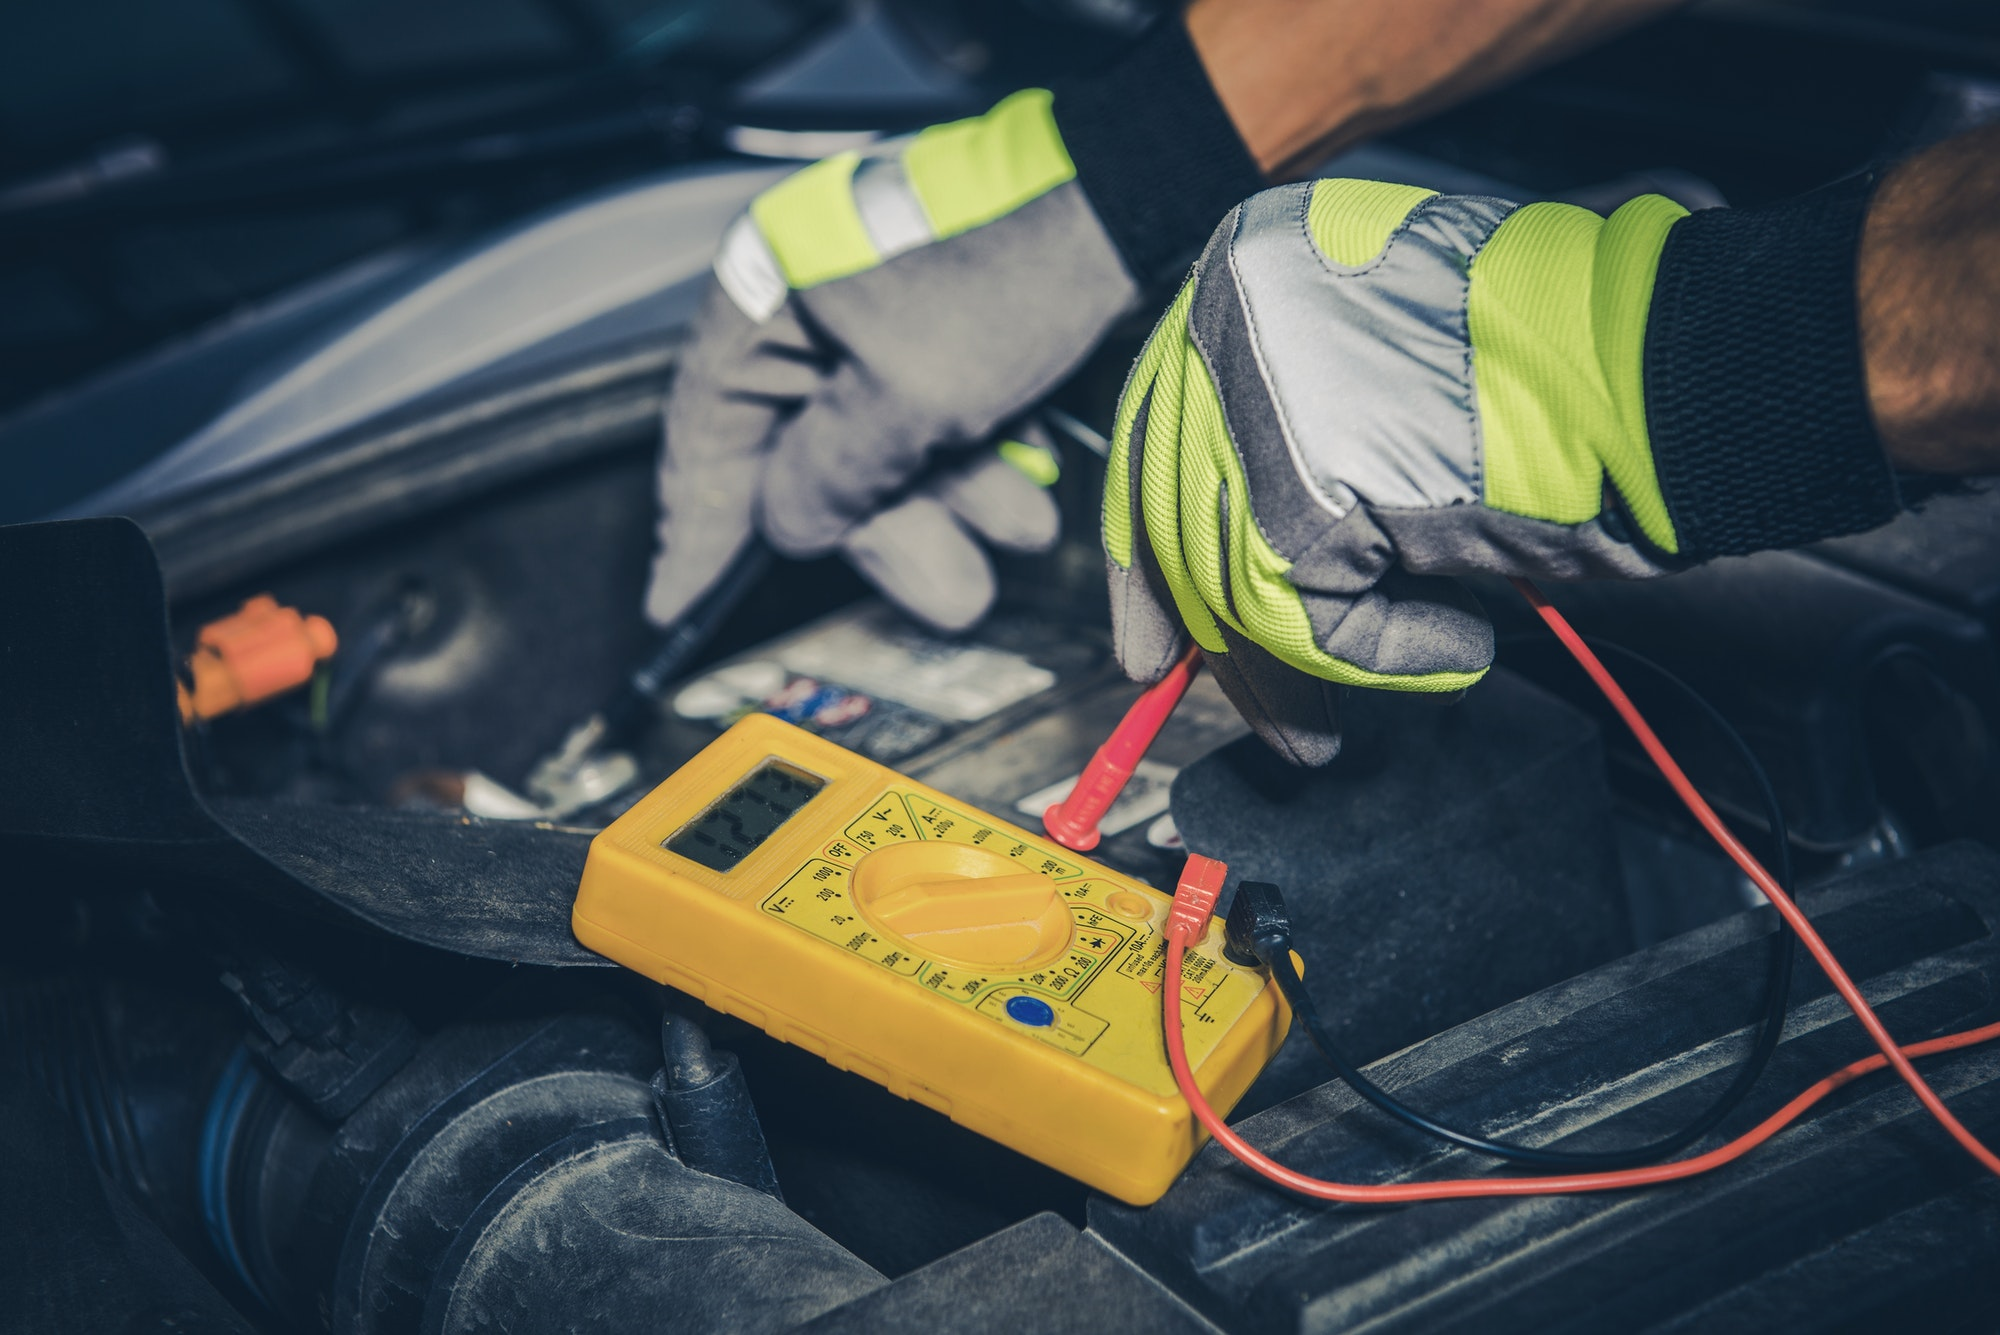 Car Battery Measurement